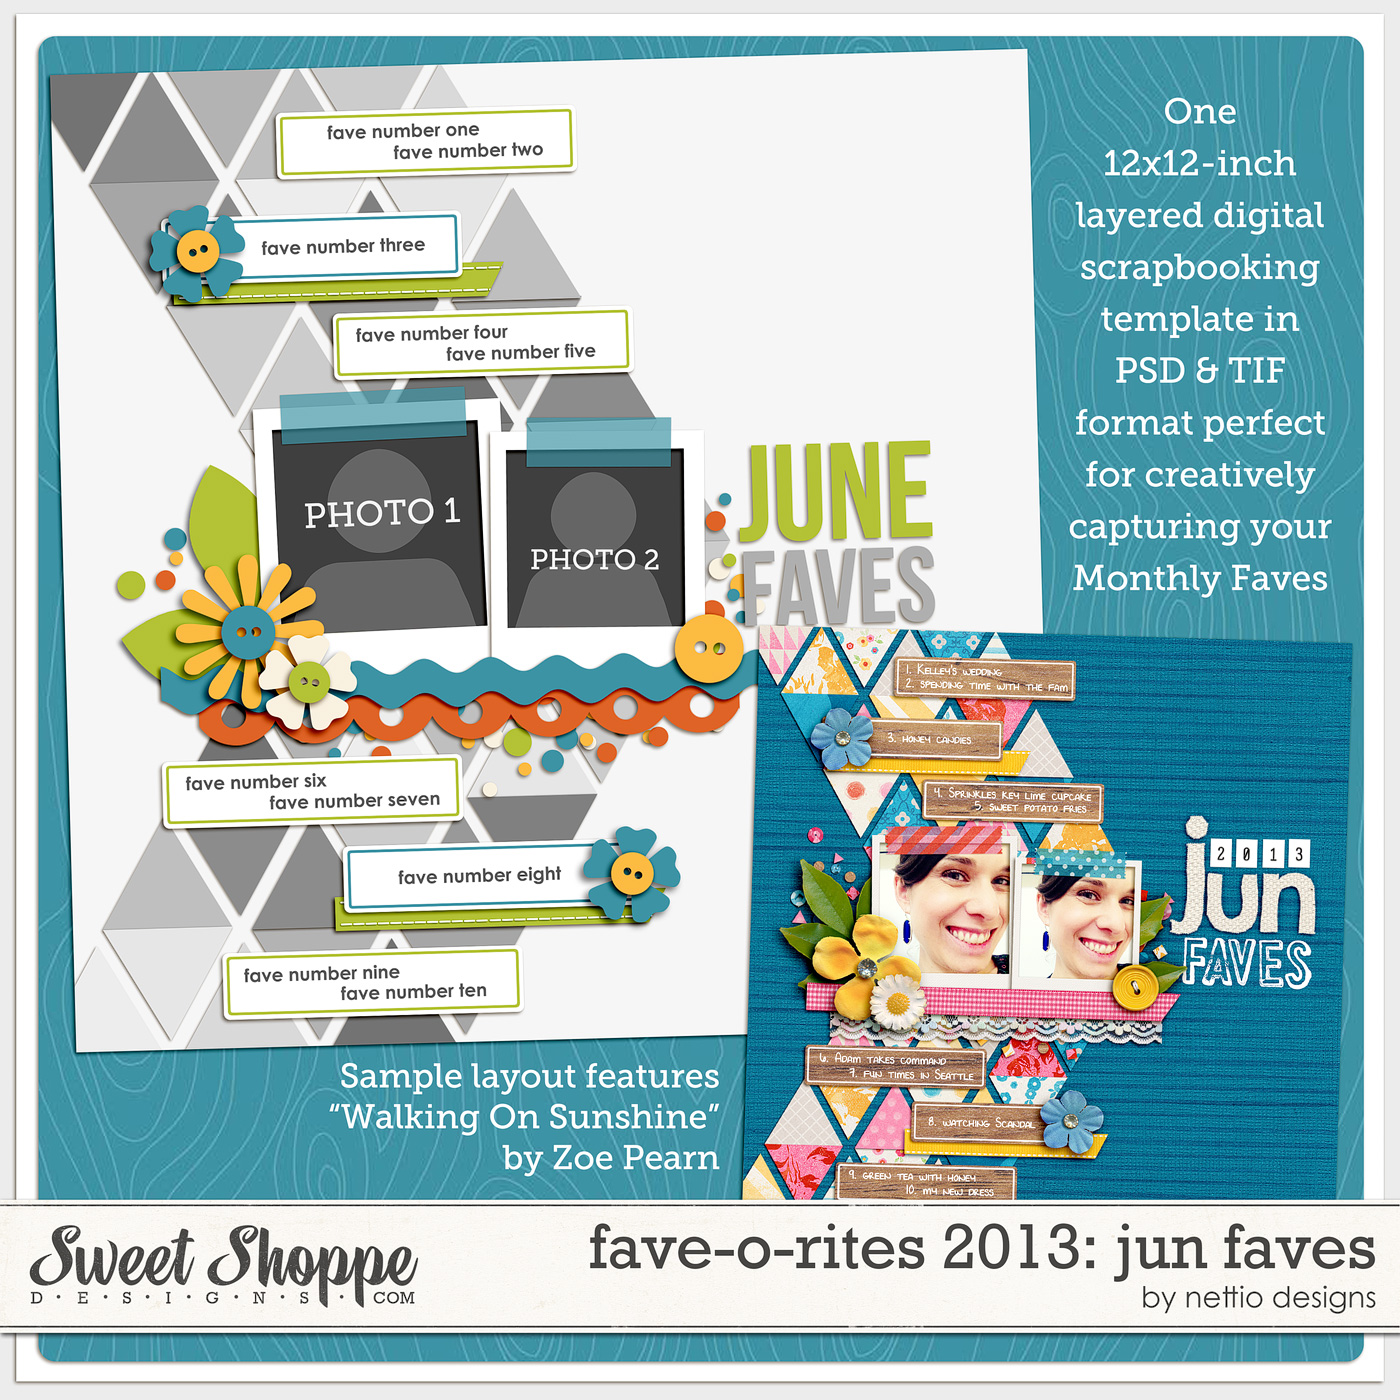 nettiodesigns_FAVE-O-RITES2013_06JunFaves-preview-1400